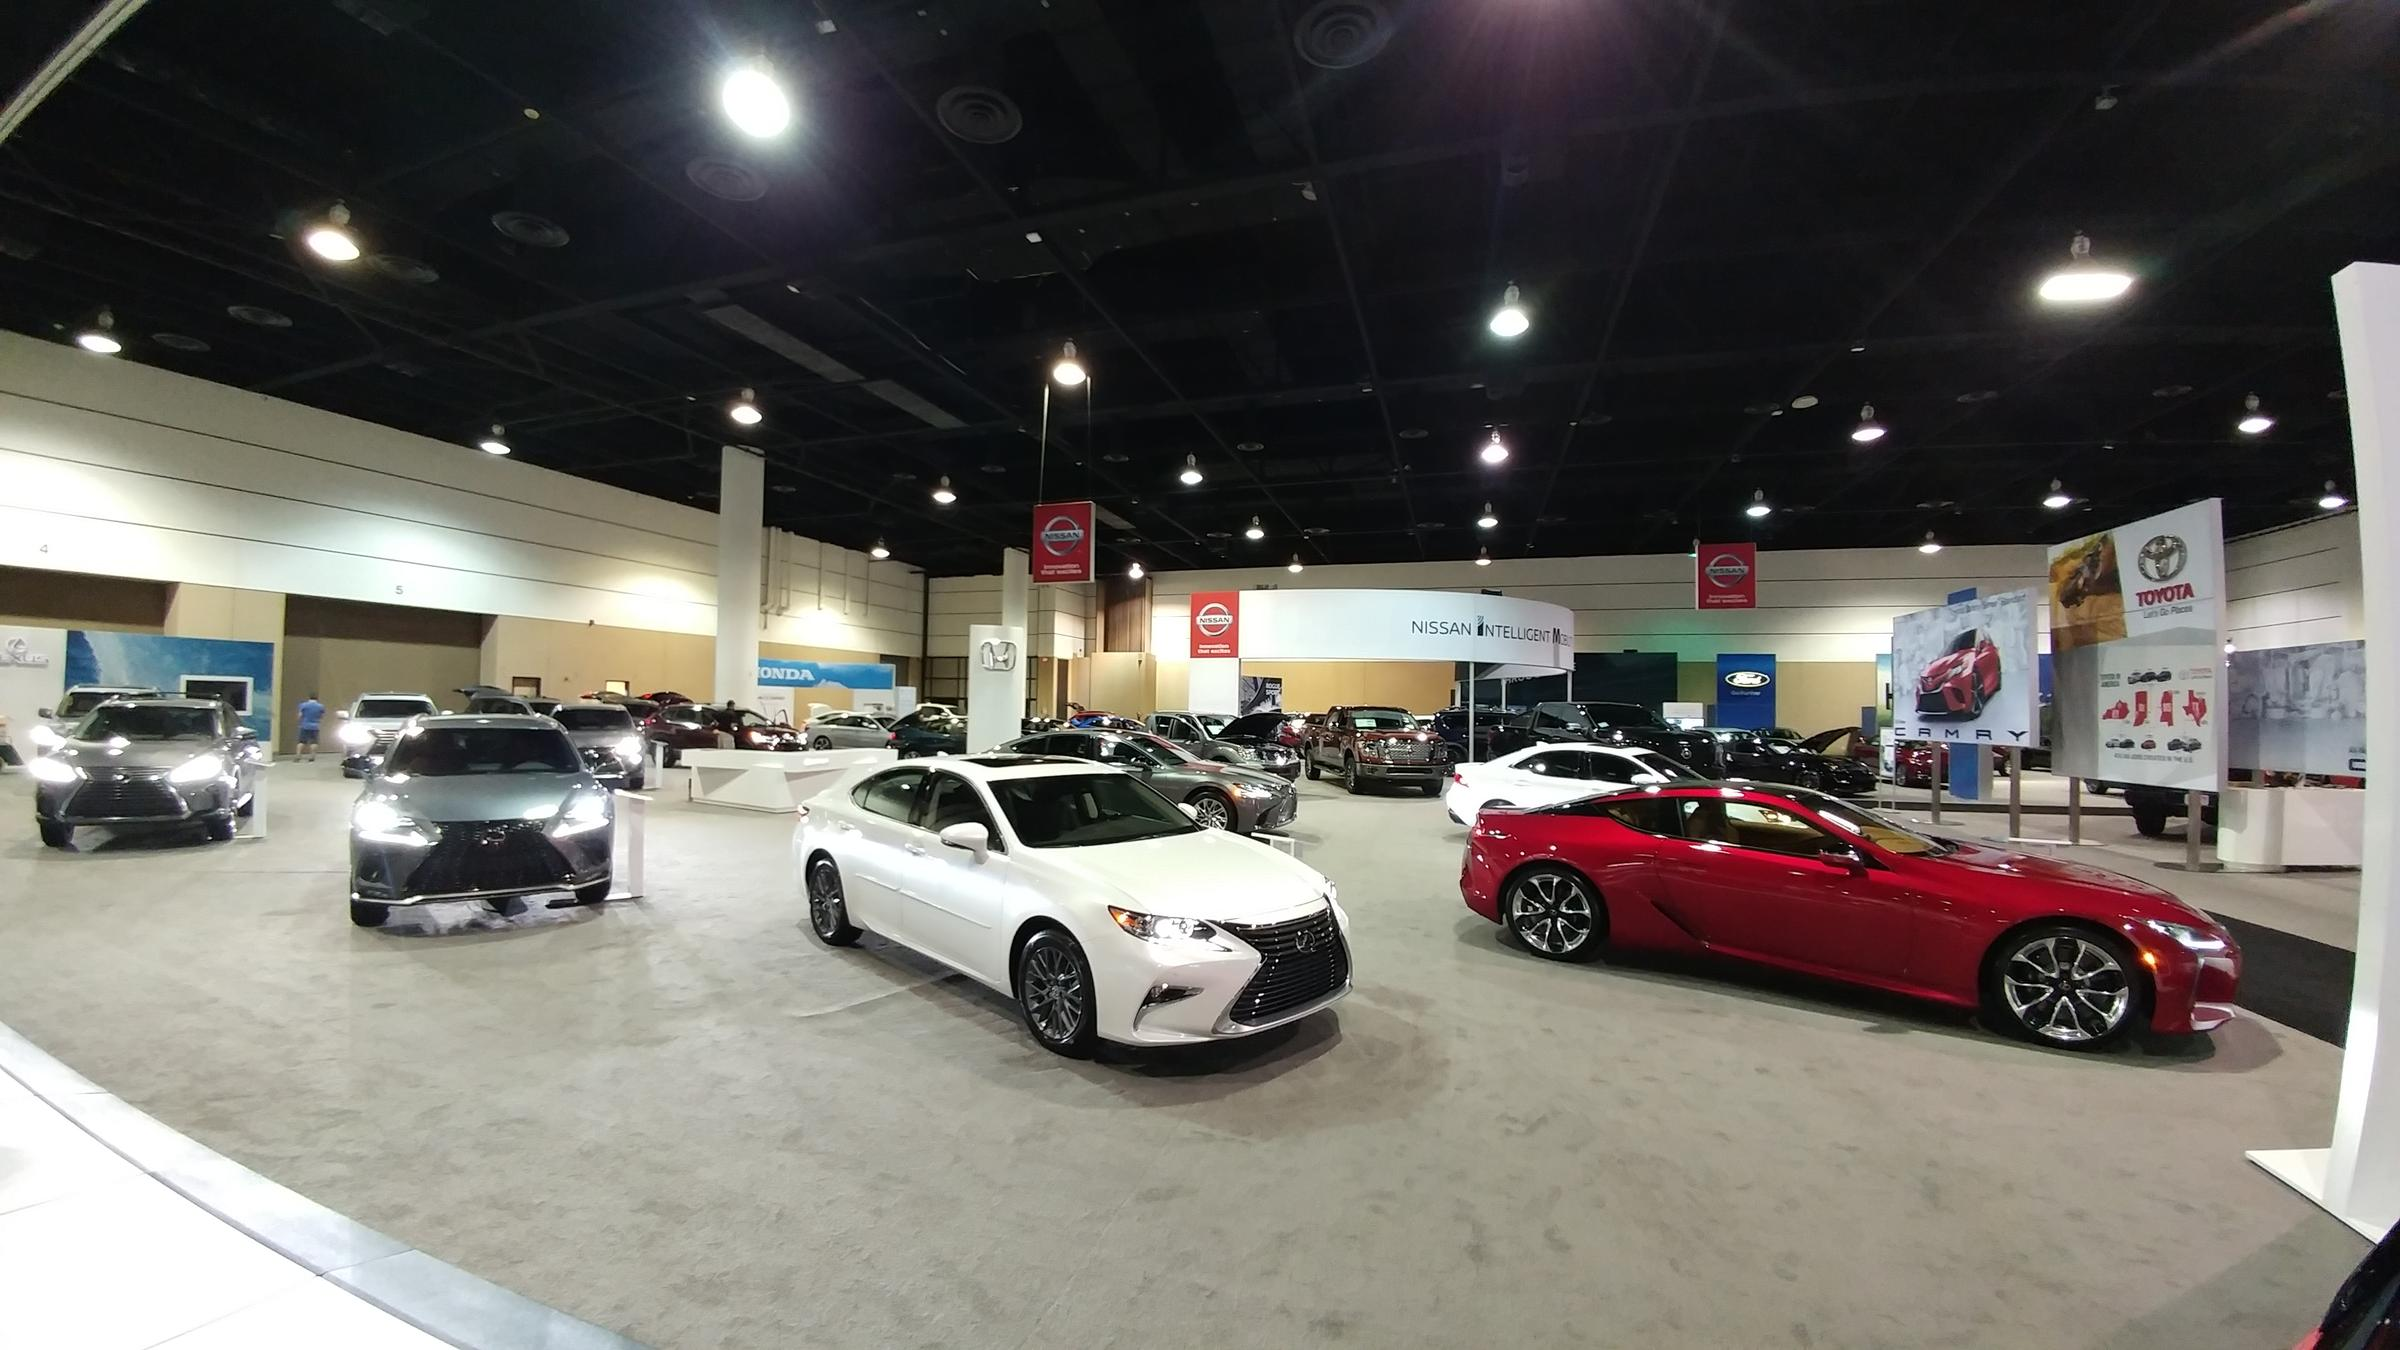 The Jacksonville International Auto Show Is Being Held At Prime Osborn Convention Center